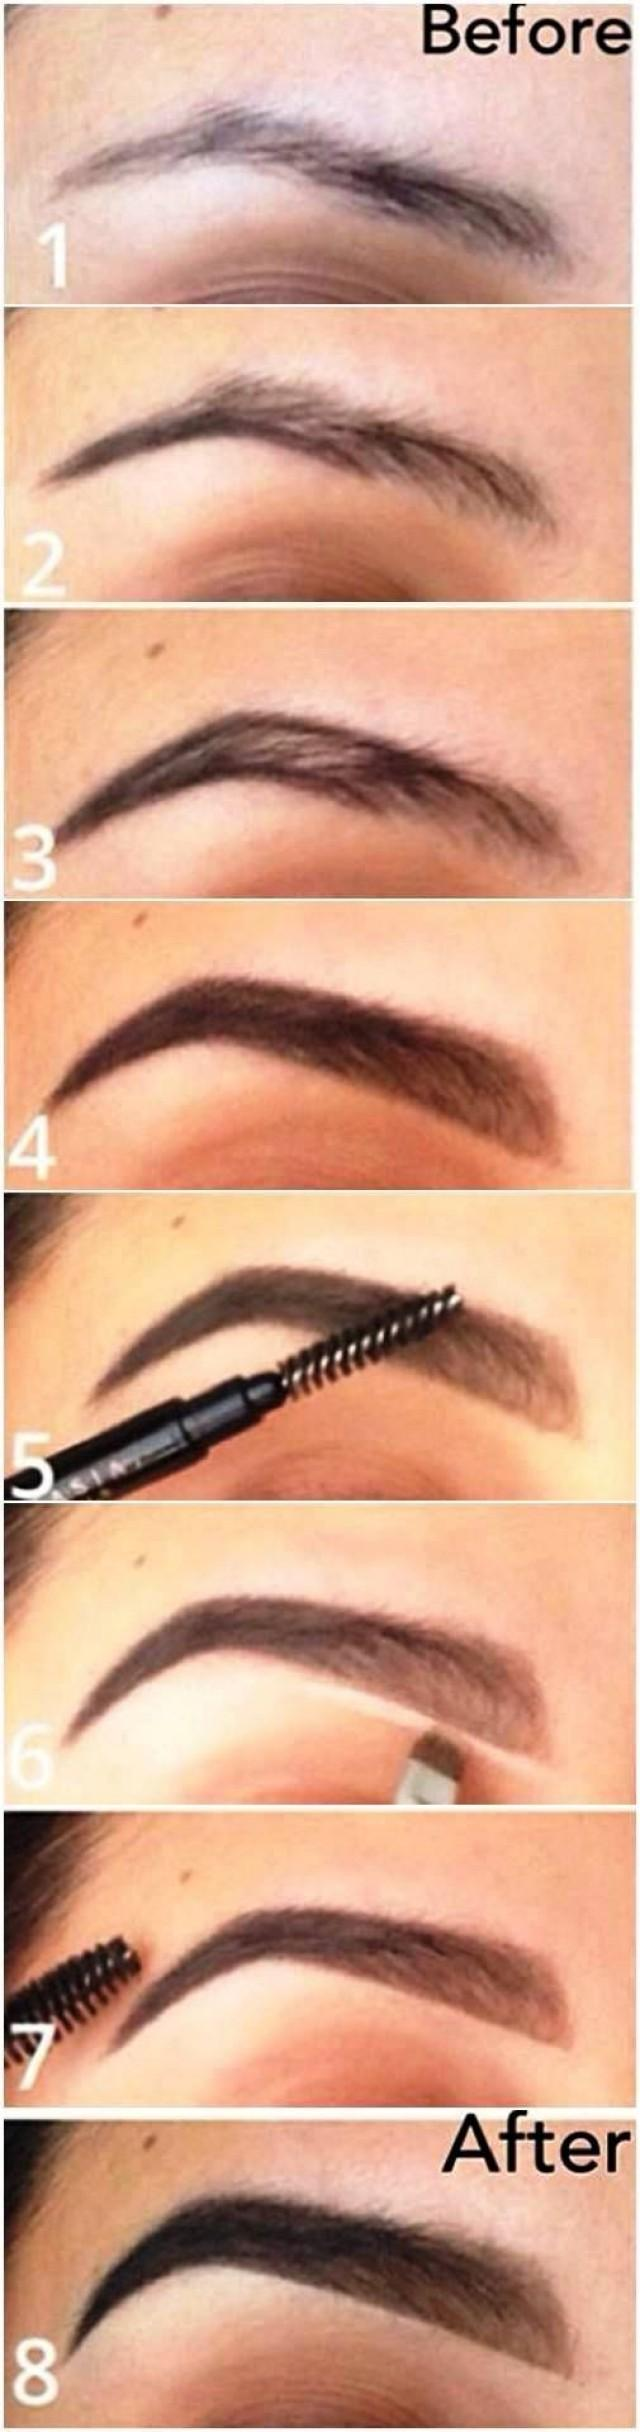 Tutorial How To Make Your Eyebrows Thicker With Makeup 2212338